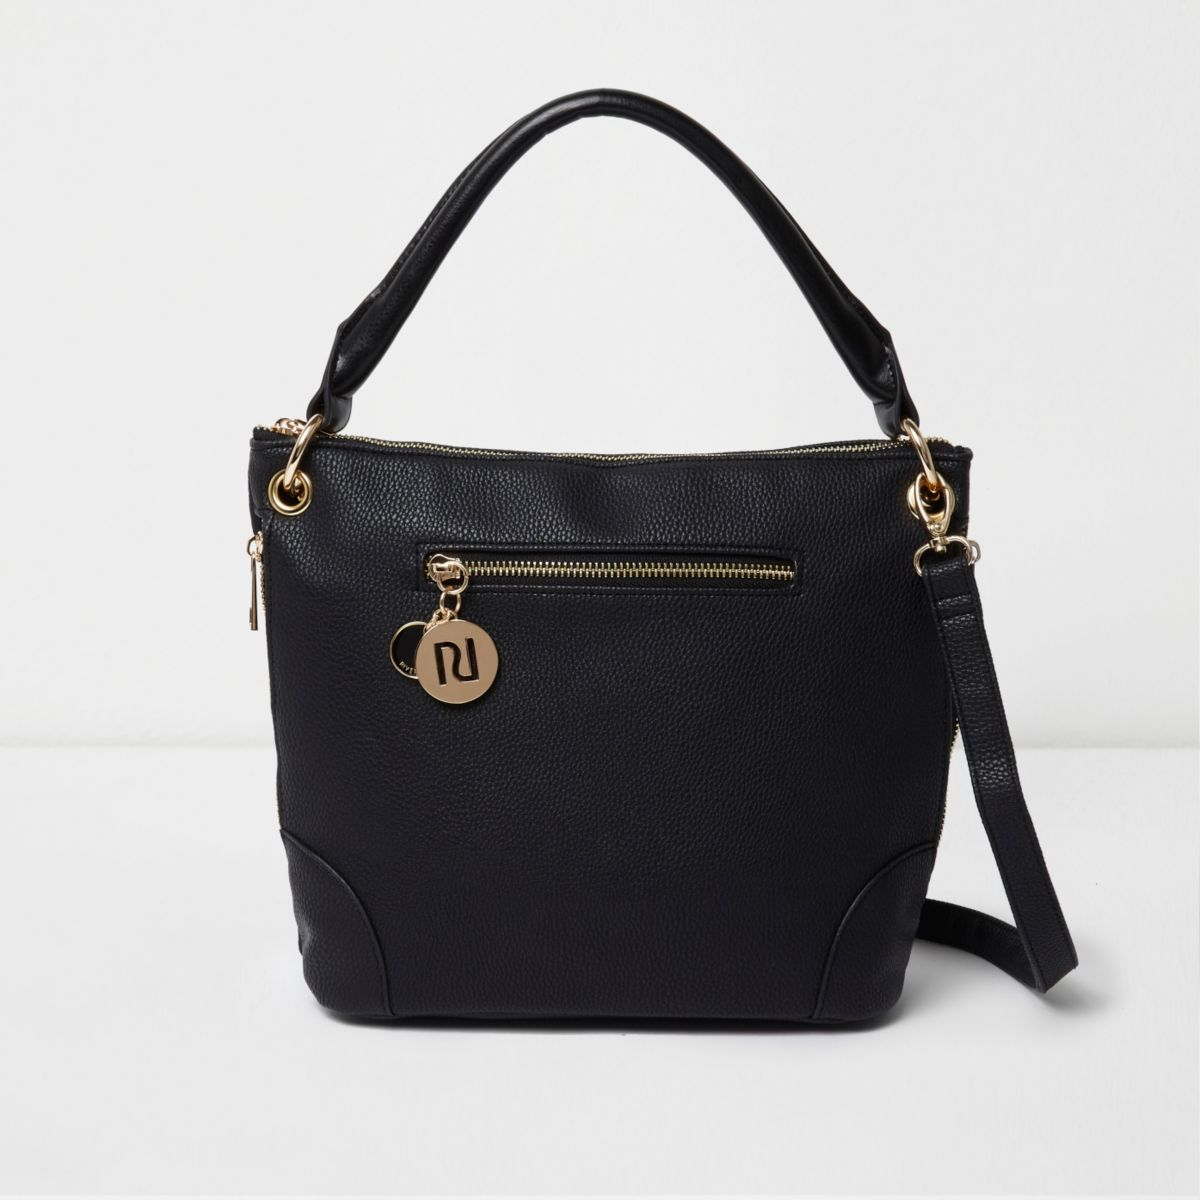 Black underarm bucket bag